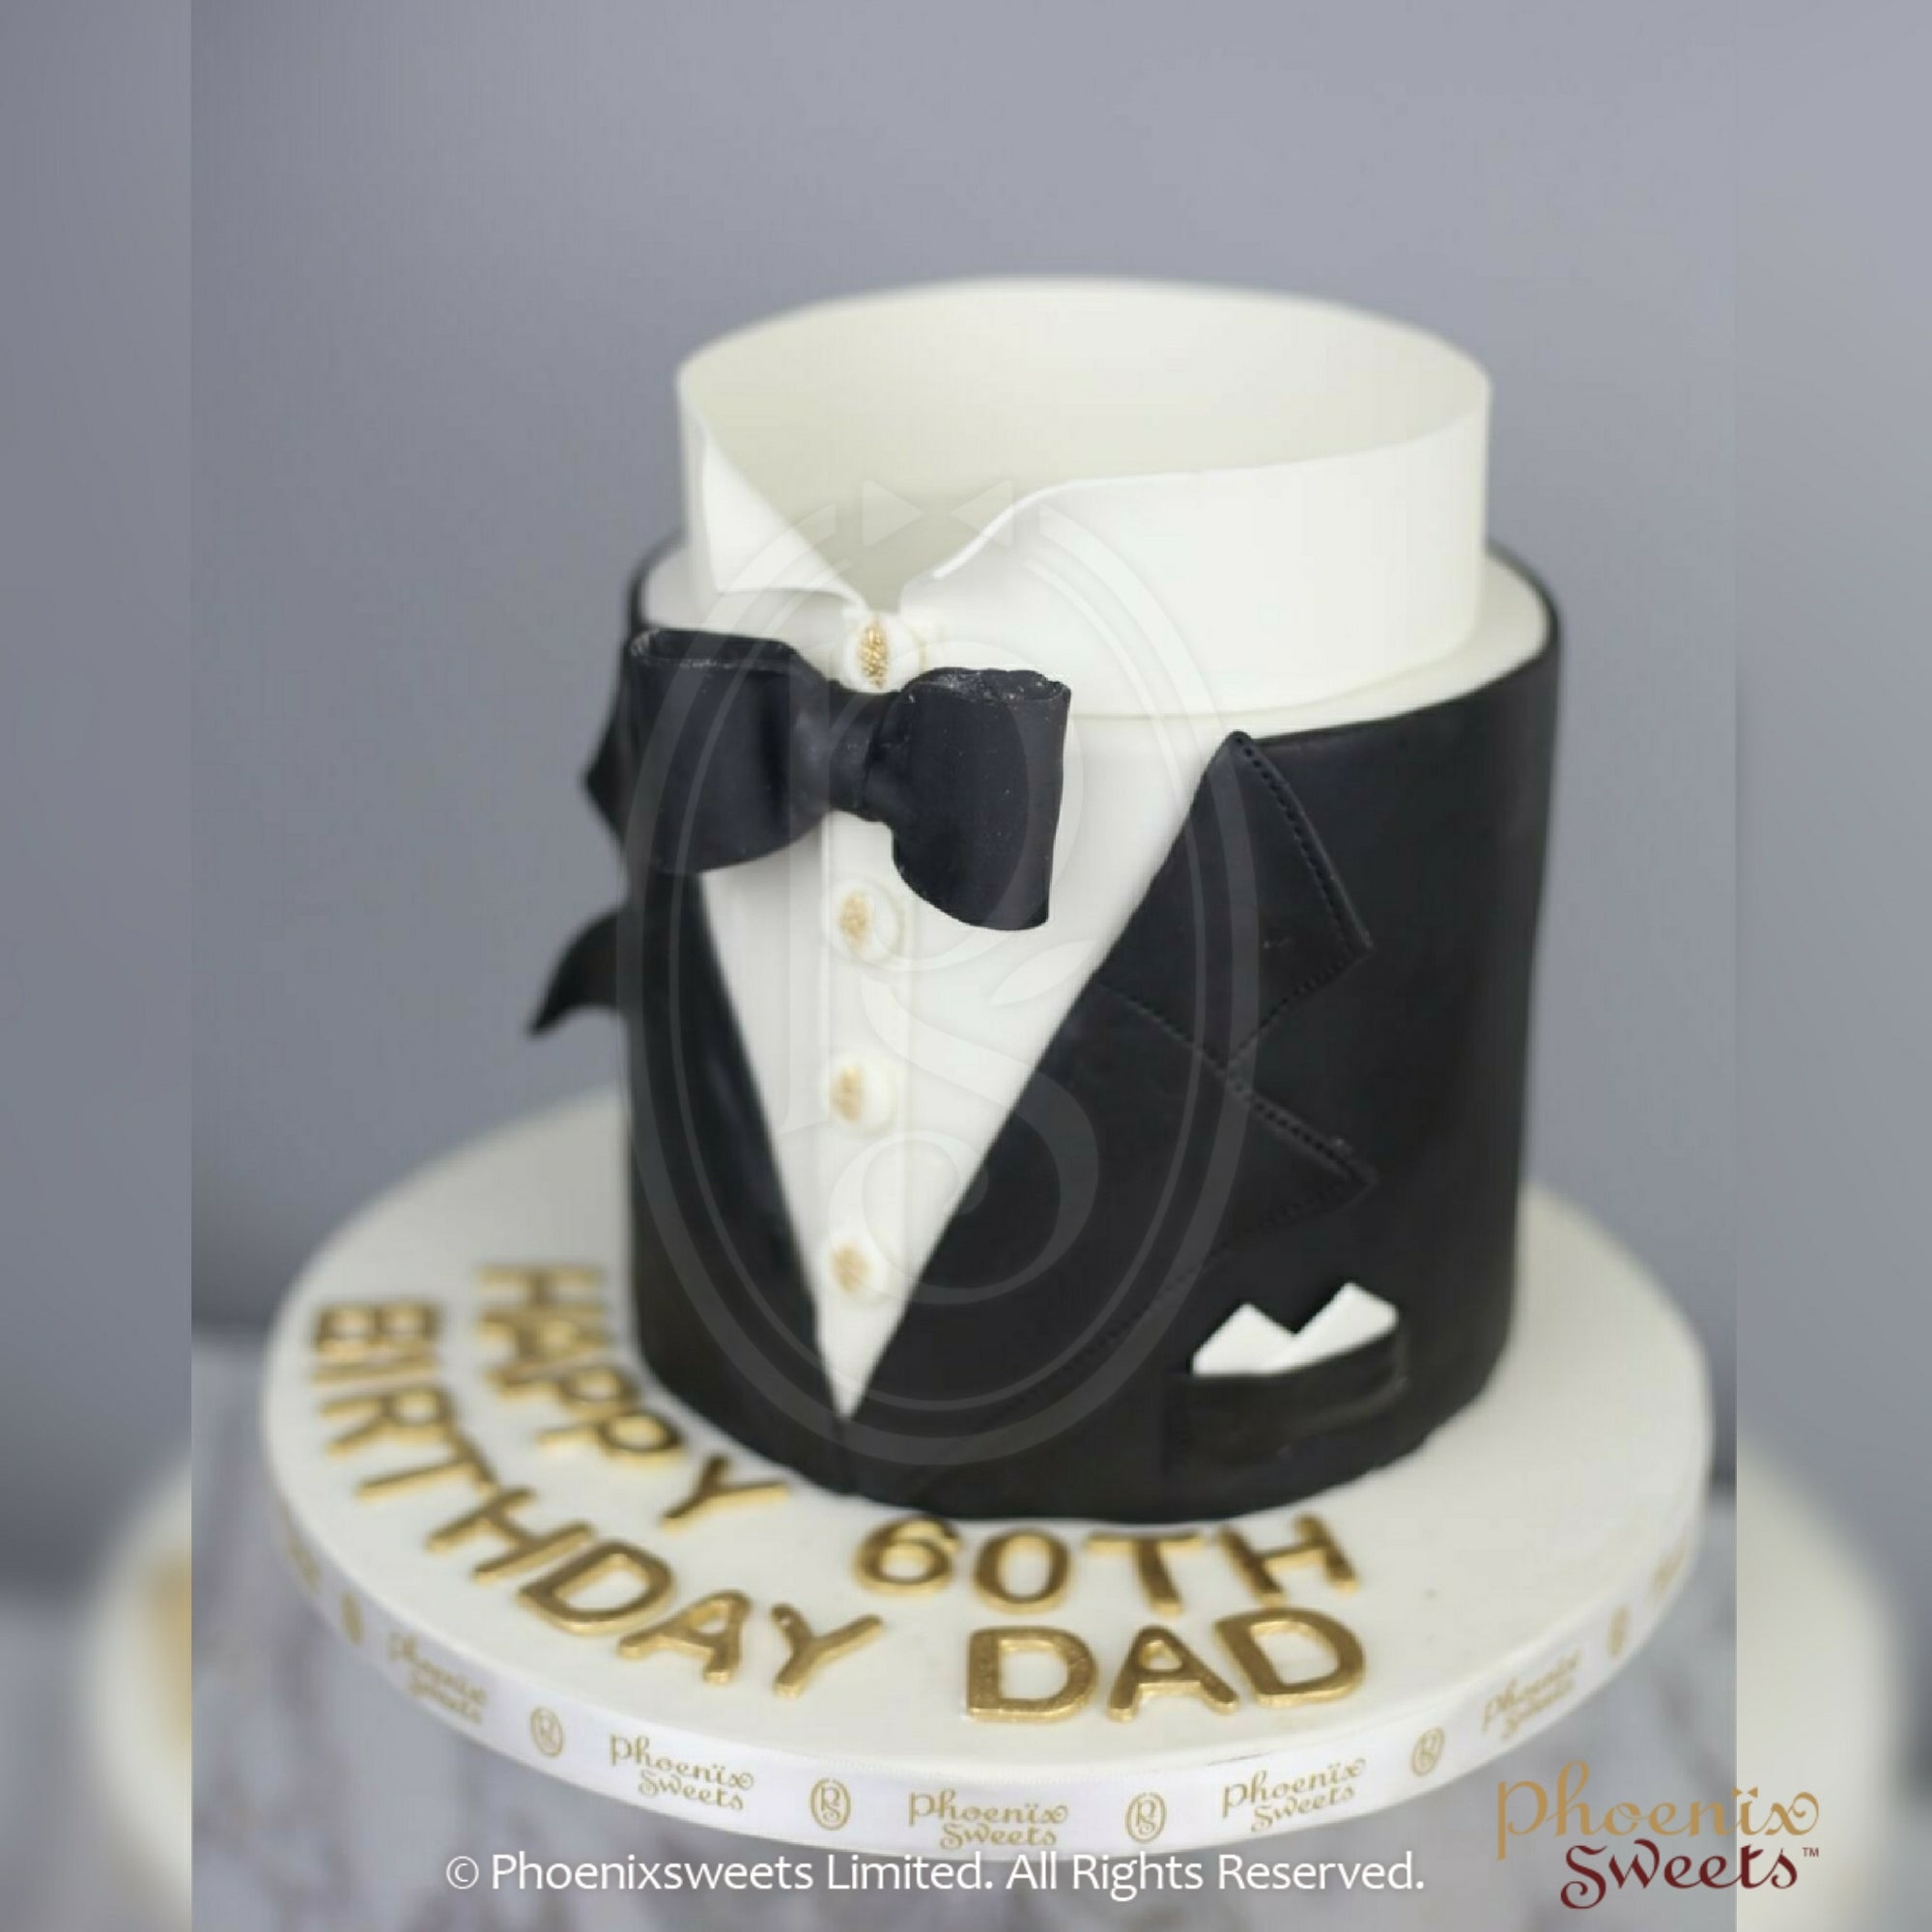 Phoenix Sweets Tuxedo Cake for Gentleman Dad Husband Boyfriend